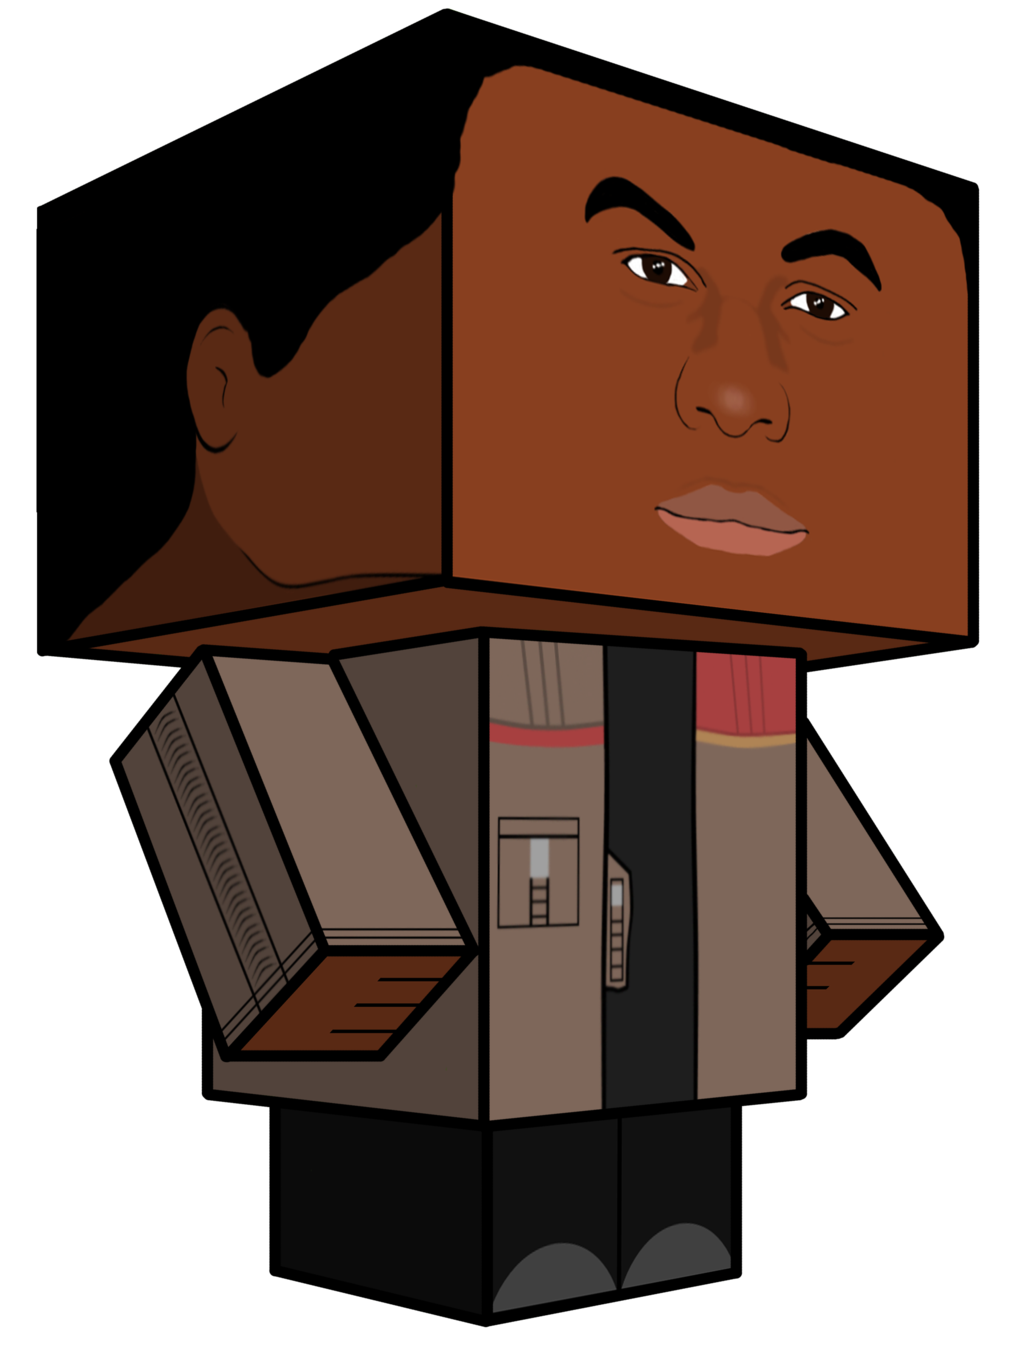 Finn star wars clipart clip transparent stock Cubeecraft Finn Star Wars Episode VII by JagaMen on DeviantArt clip transparent stock